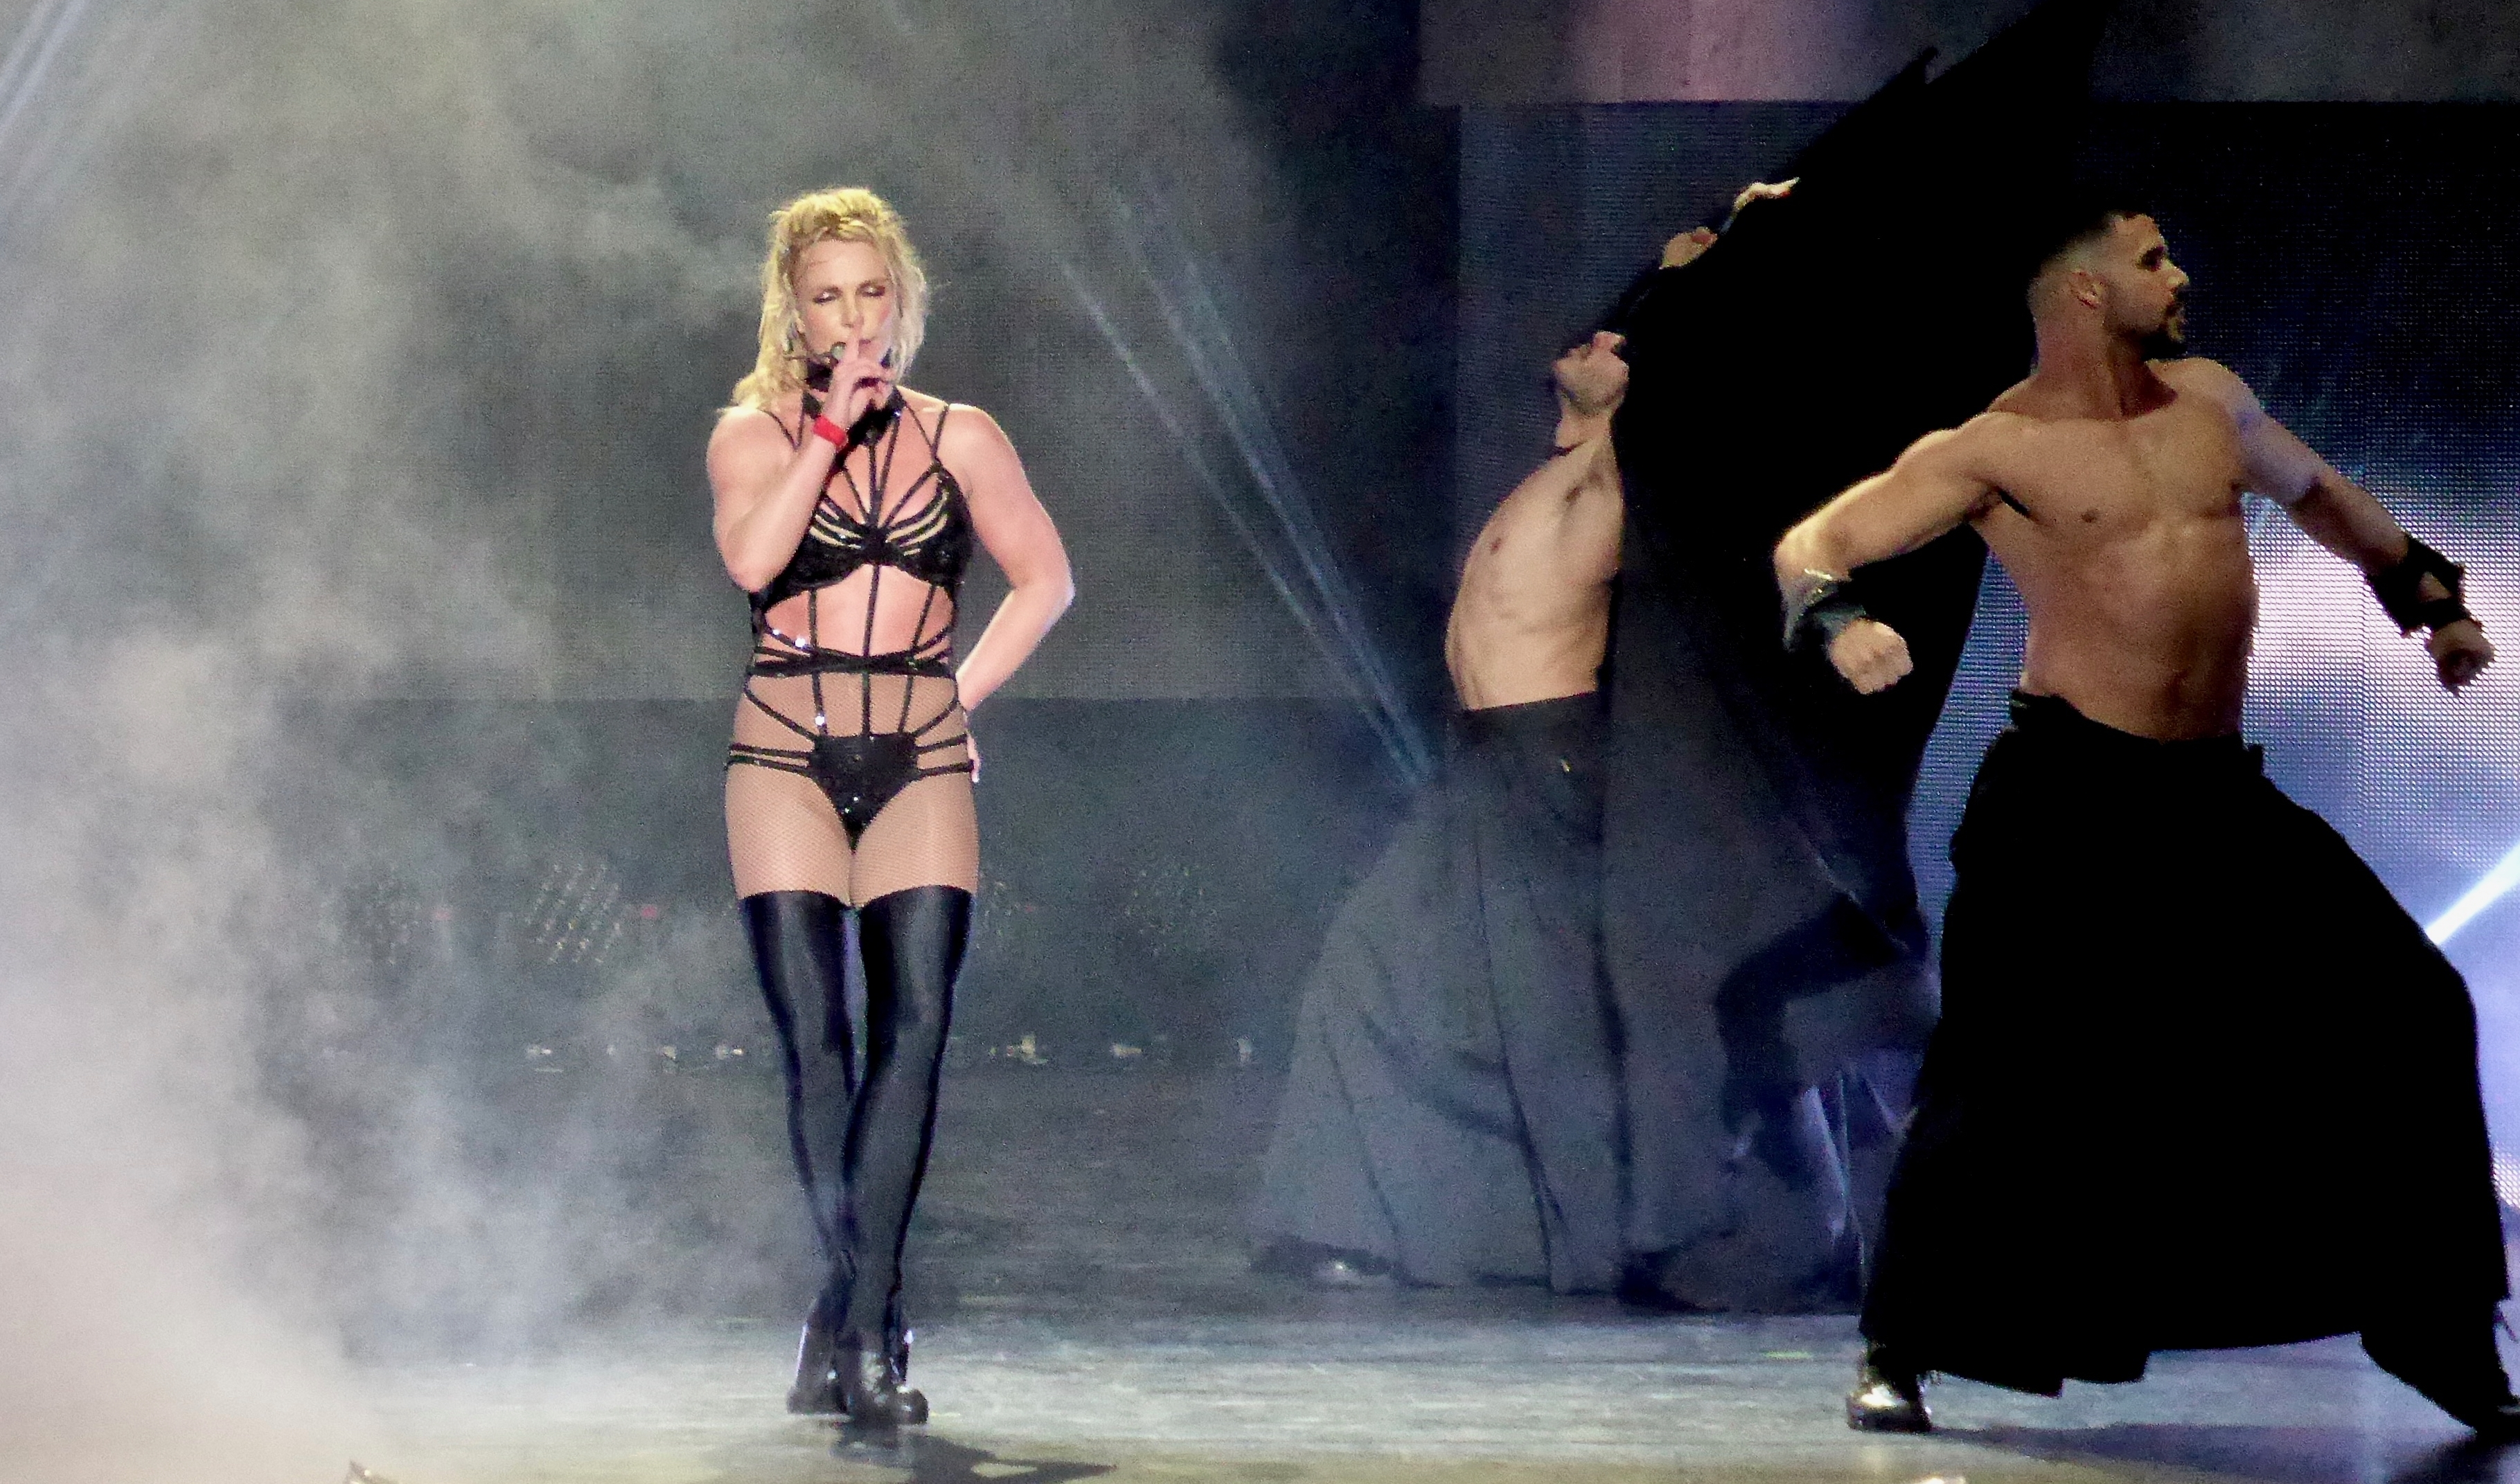 Britney Spears performs on her 'Piece Of Me' tour at Scarborough Open Air Theatre.Featuring: Britney SpearsWhere: Scarborough, United KingdomWhen: 18 Aug 2018Credit: WENN.com